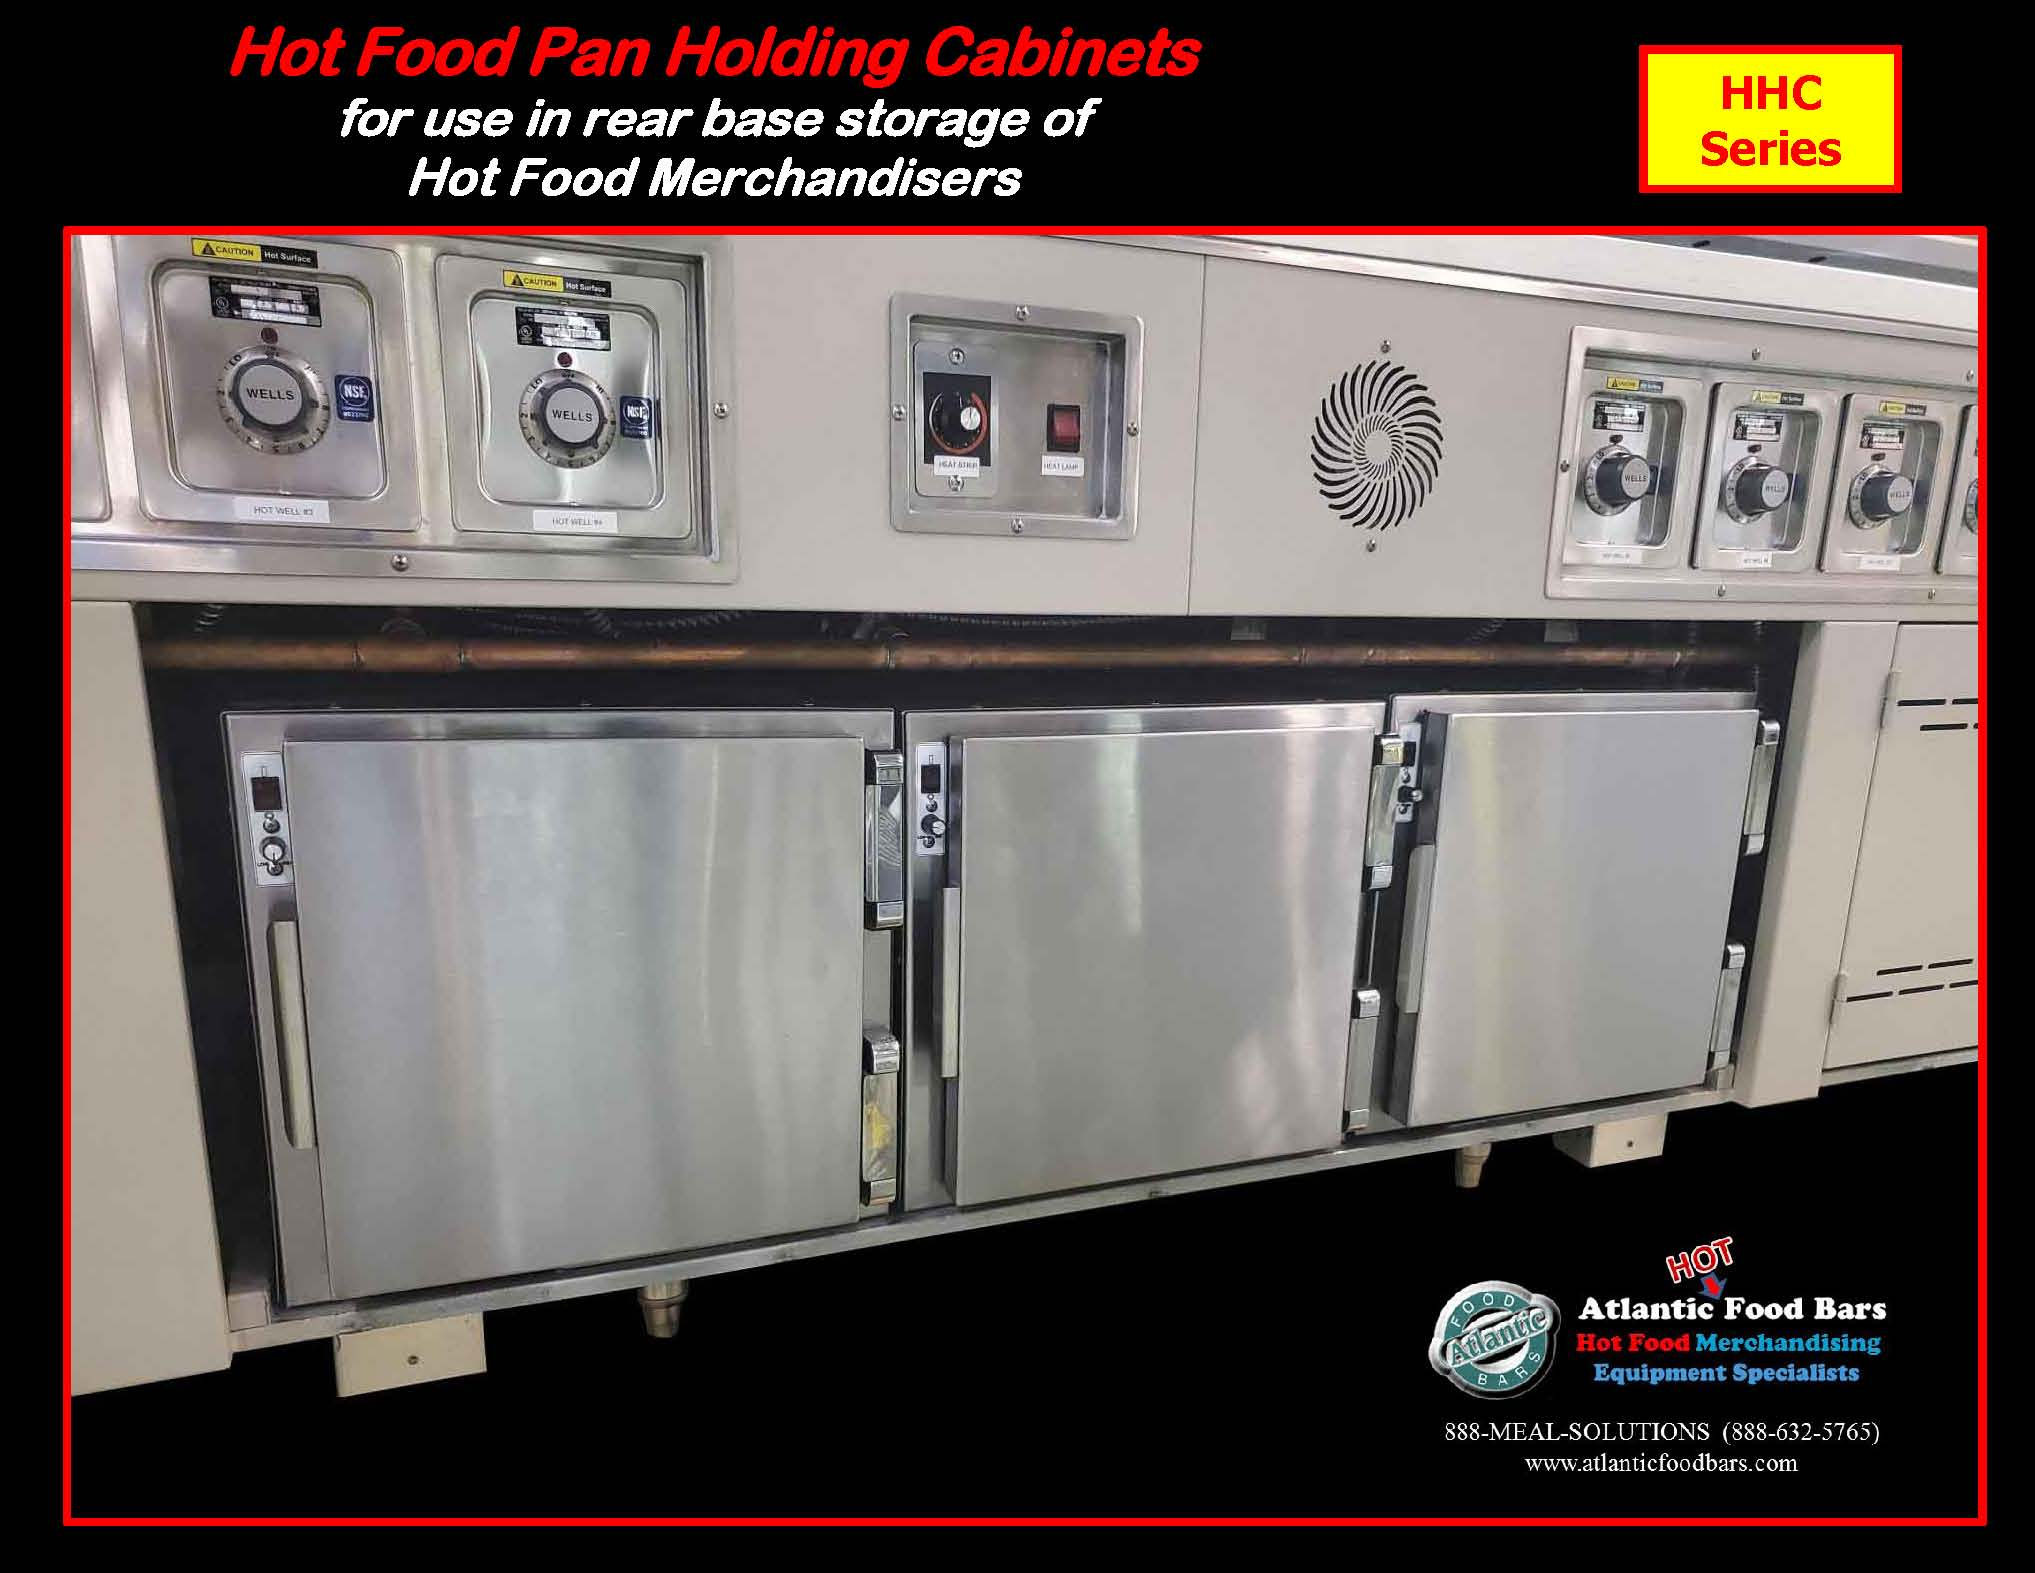 Atlantic Food Bars - Hot Food Pan Holding Cabinets for use in rear base storage of hot food merchandisers - HHC_Page_3